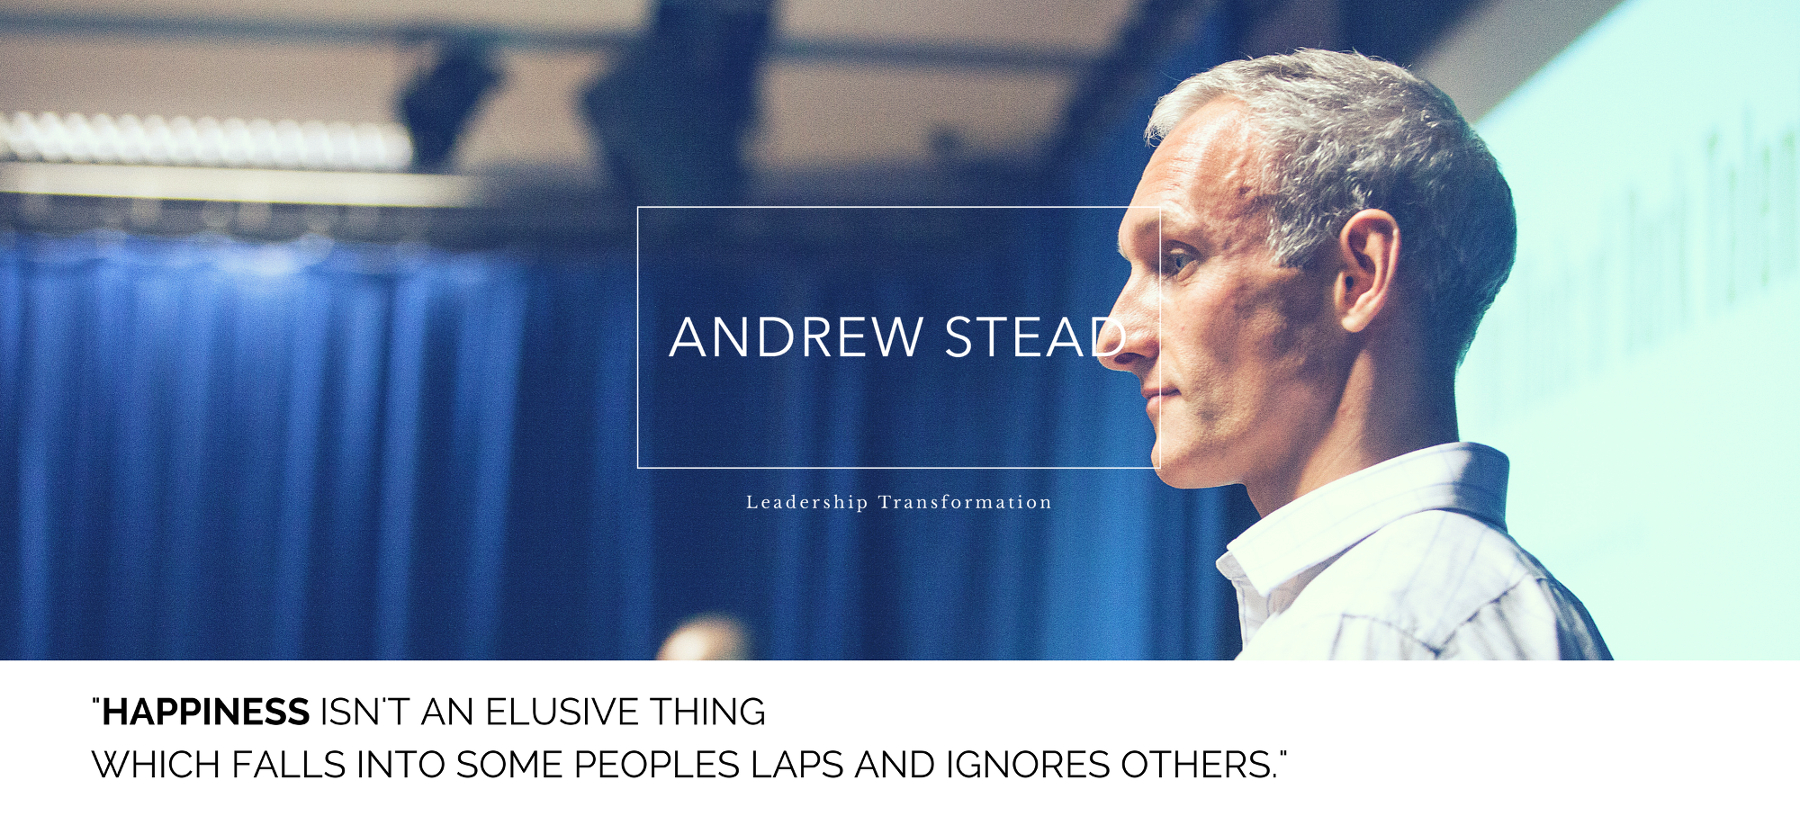 Andrew-Stead-Leadership-Transformations-Resliience-Coach-Blog-Posts-Your-Daily-Bread